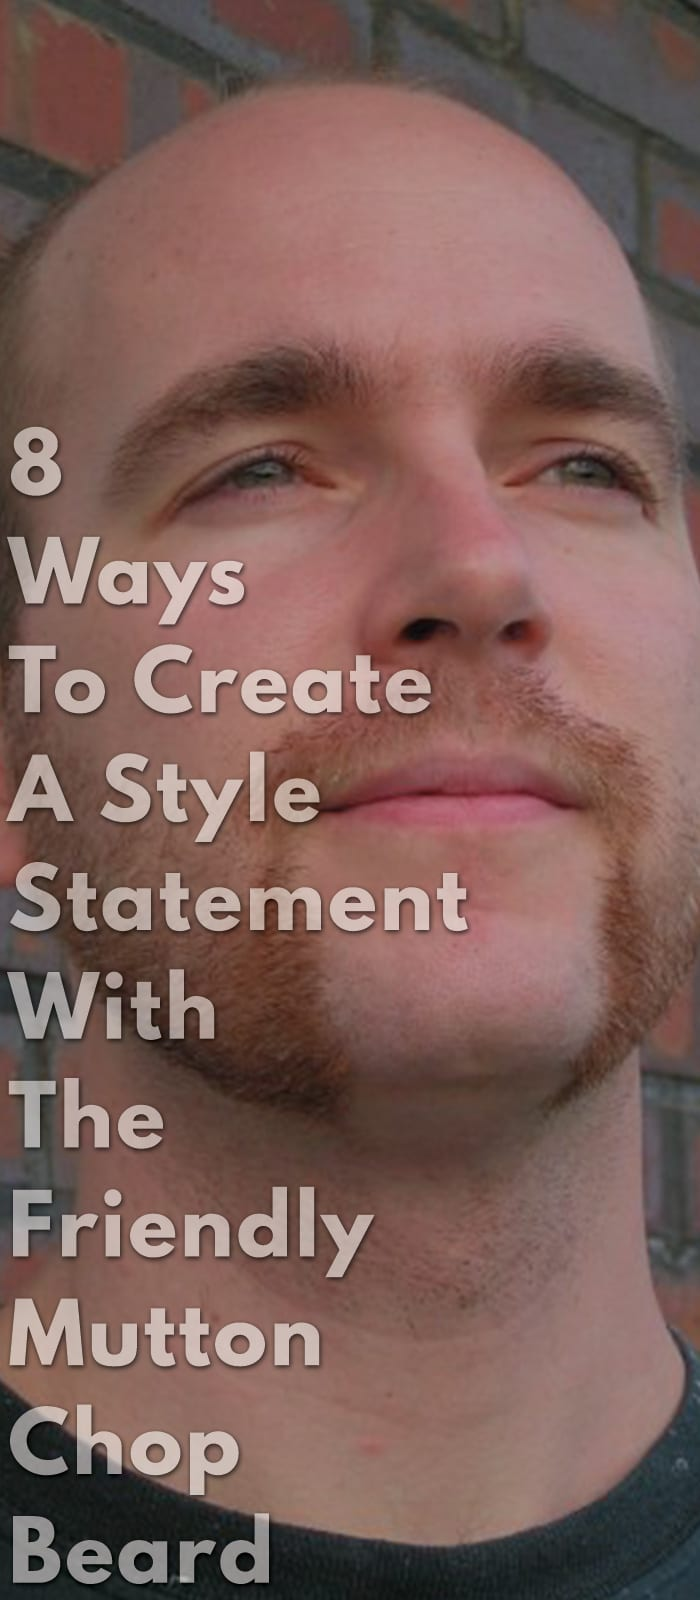 8-Ways-To-Create-A-Style-Statement-With-The-Friendly-Mutton-Chop-Beard